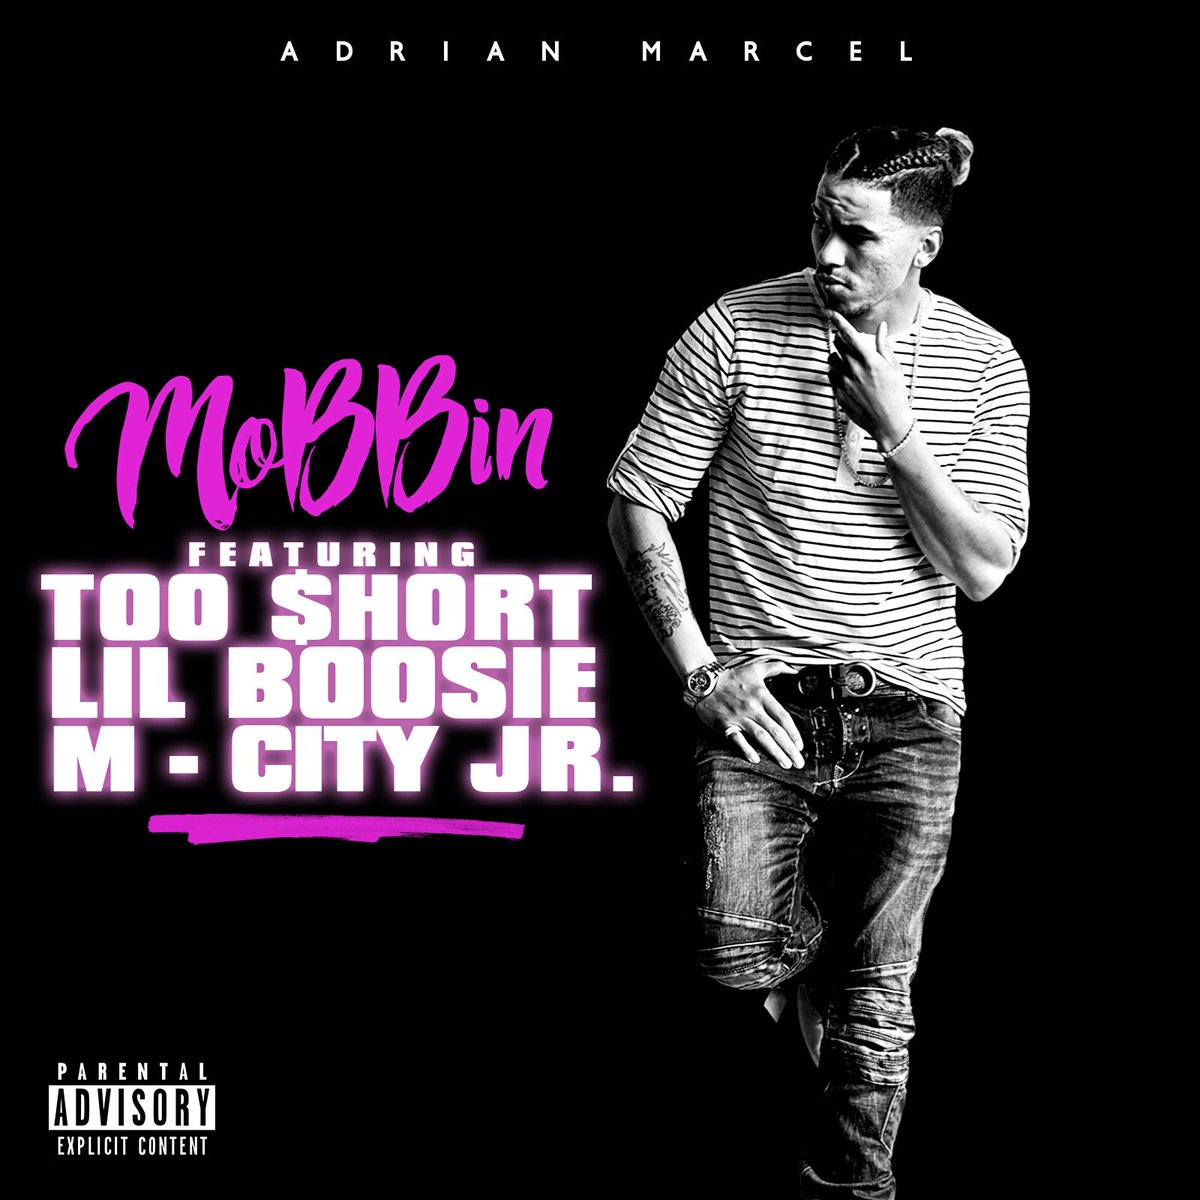 "NEW MUSIC: @adrianmarcel510 ""Mobbin"" DOWNLOAD HERE https://t.co/W4H0jyHl6T"